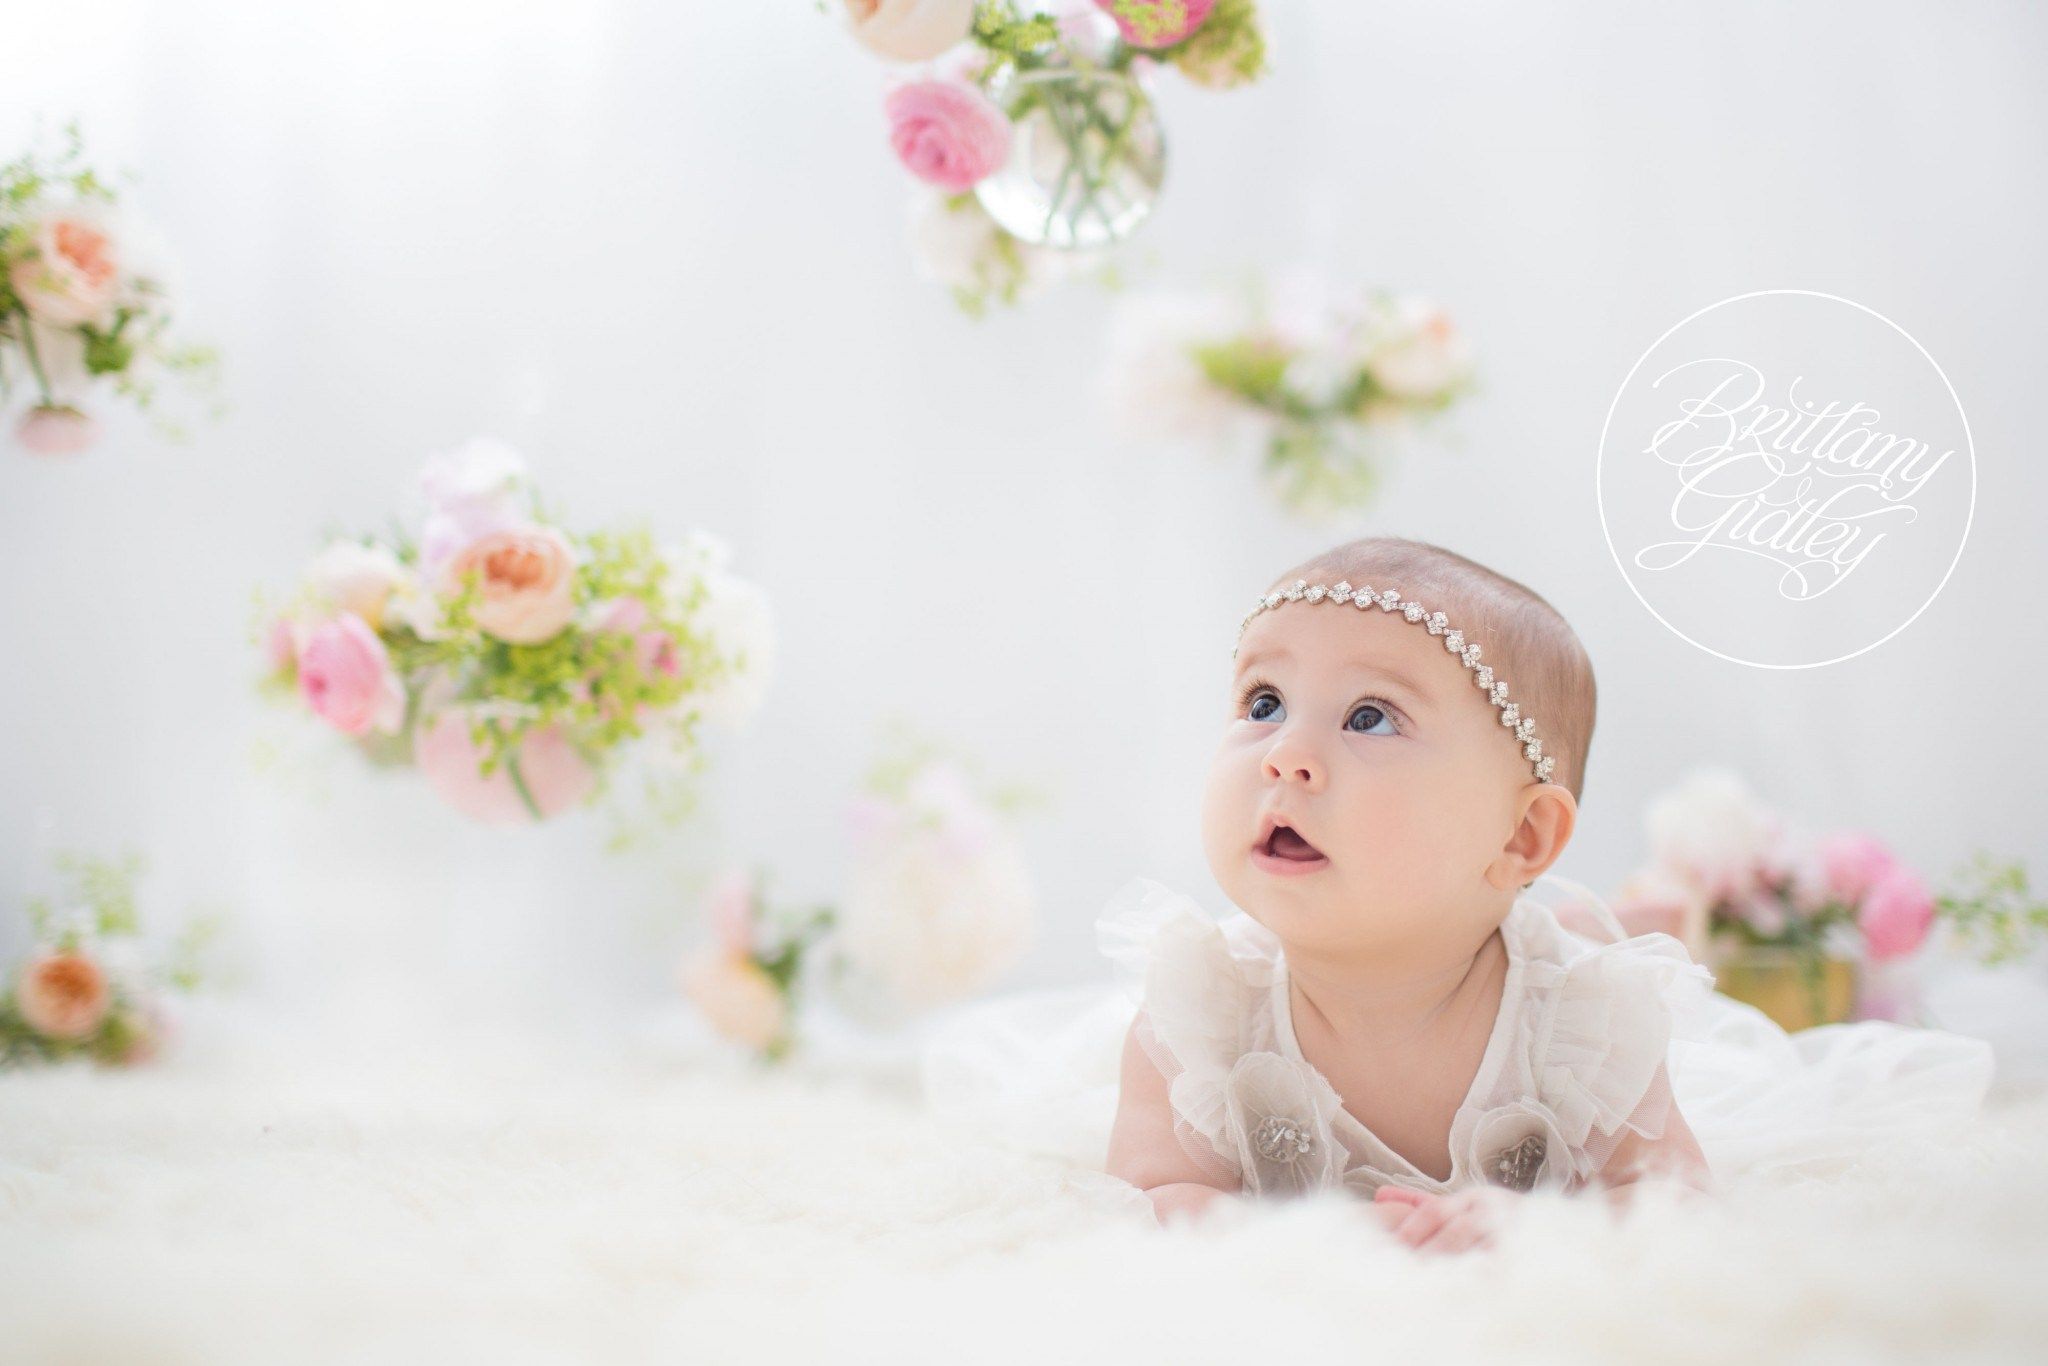 Hanging flowers cleveland ohio photo shoot 6 month baby start with the best brittany gidley photography llc clevelands best baby photographer